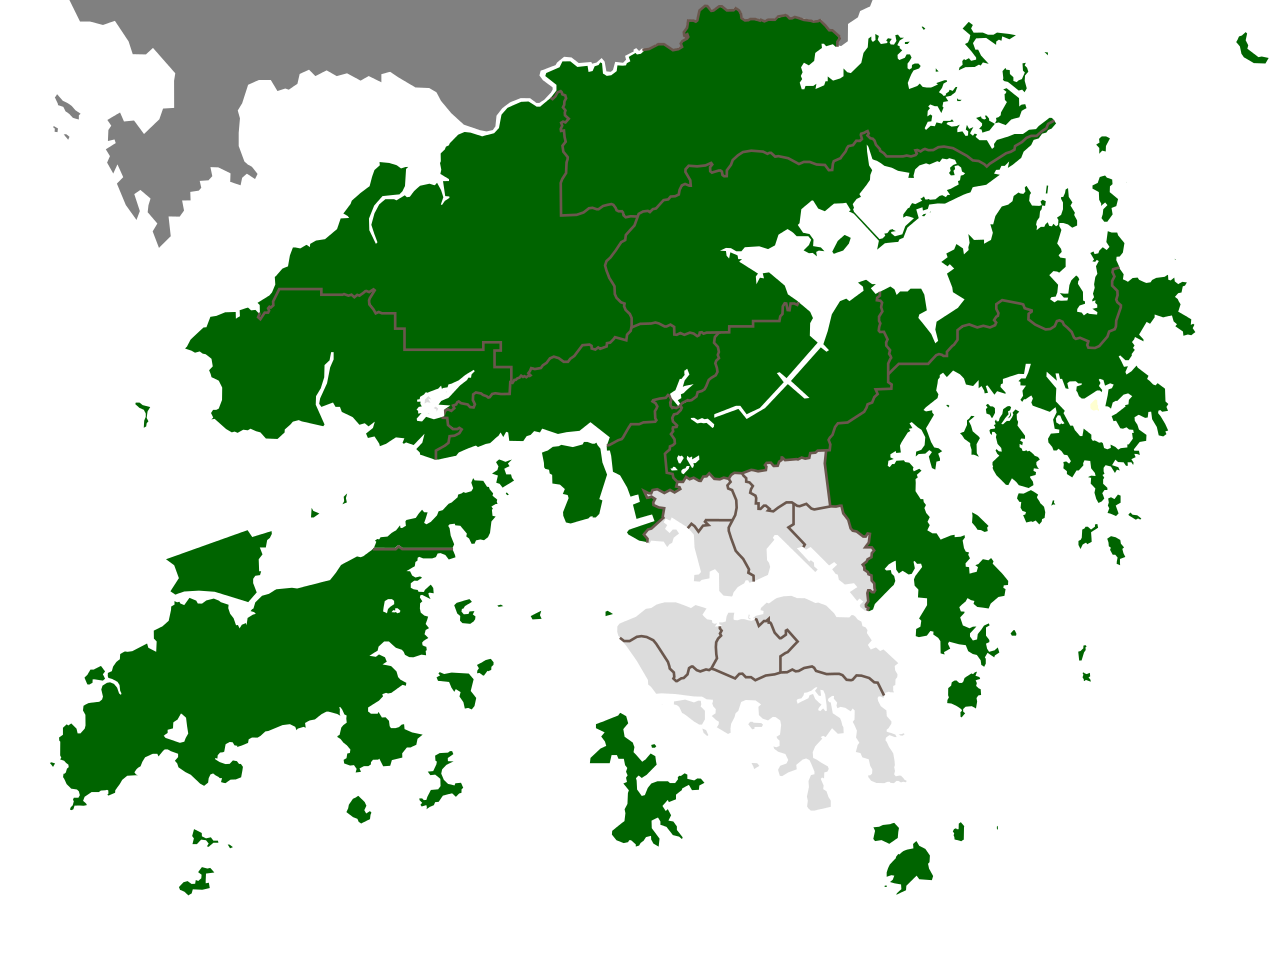 Hong_Kong_New_Territories.svg